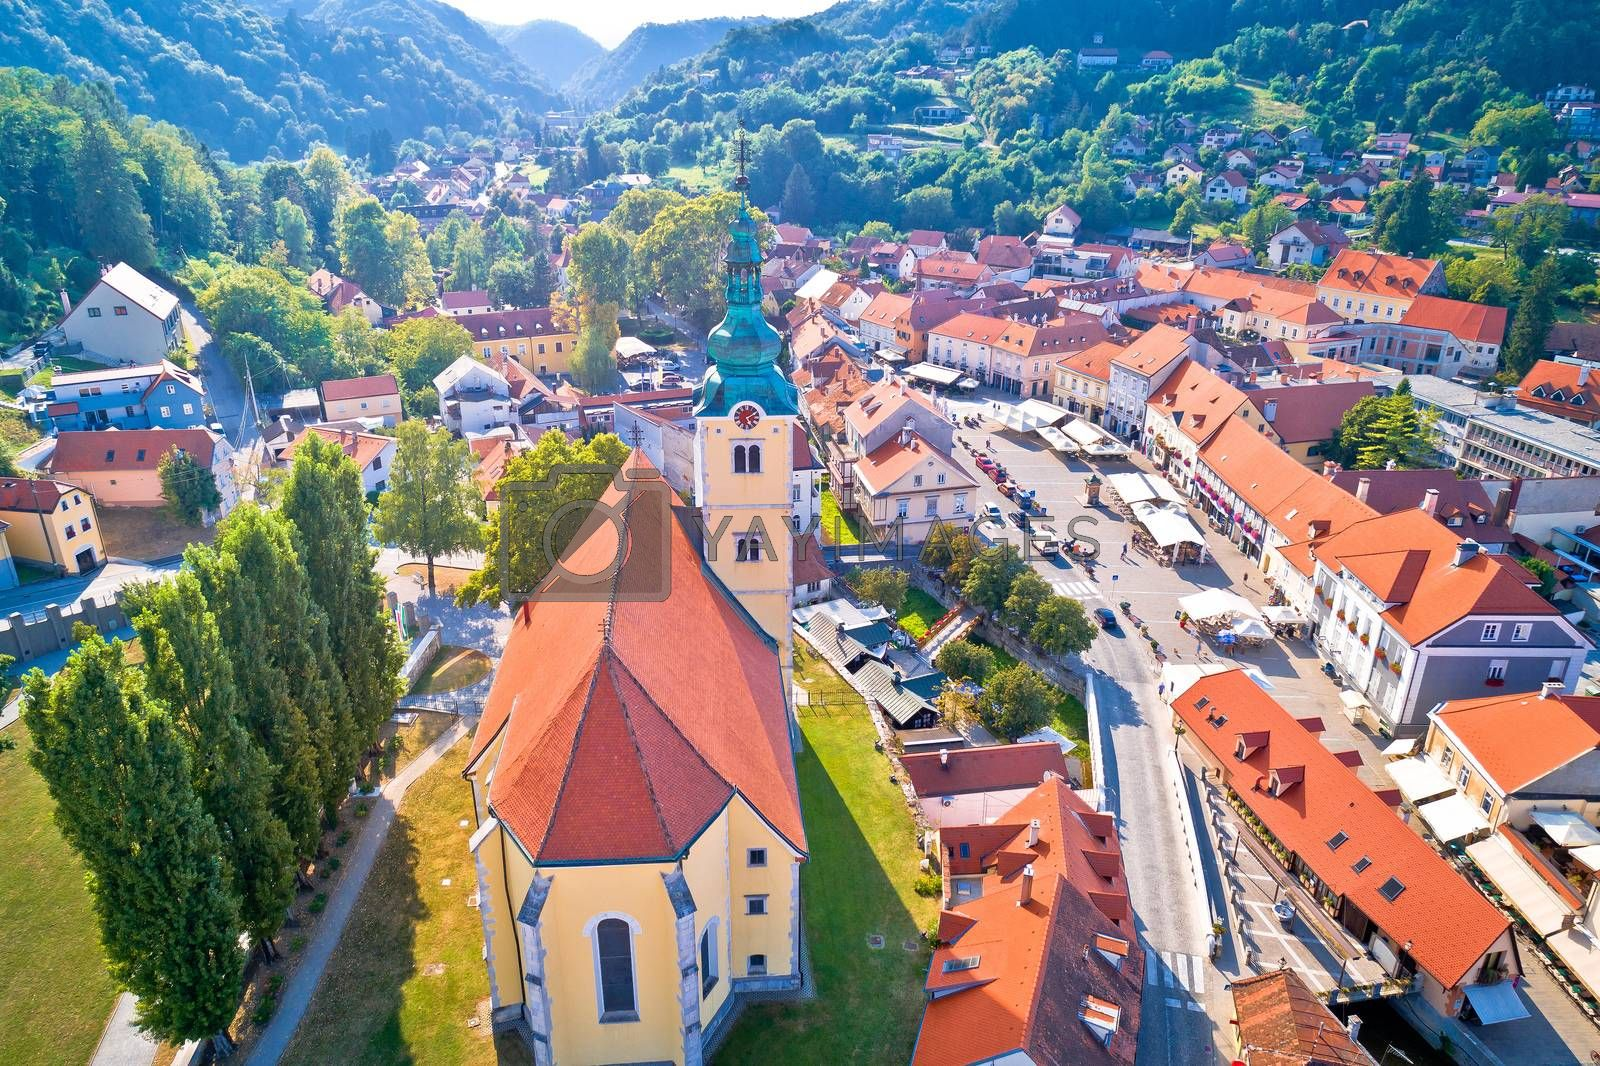 Samobor main square and church tower aerial view, northern Croatia